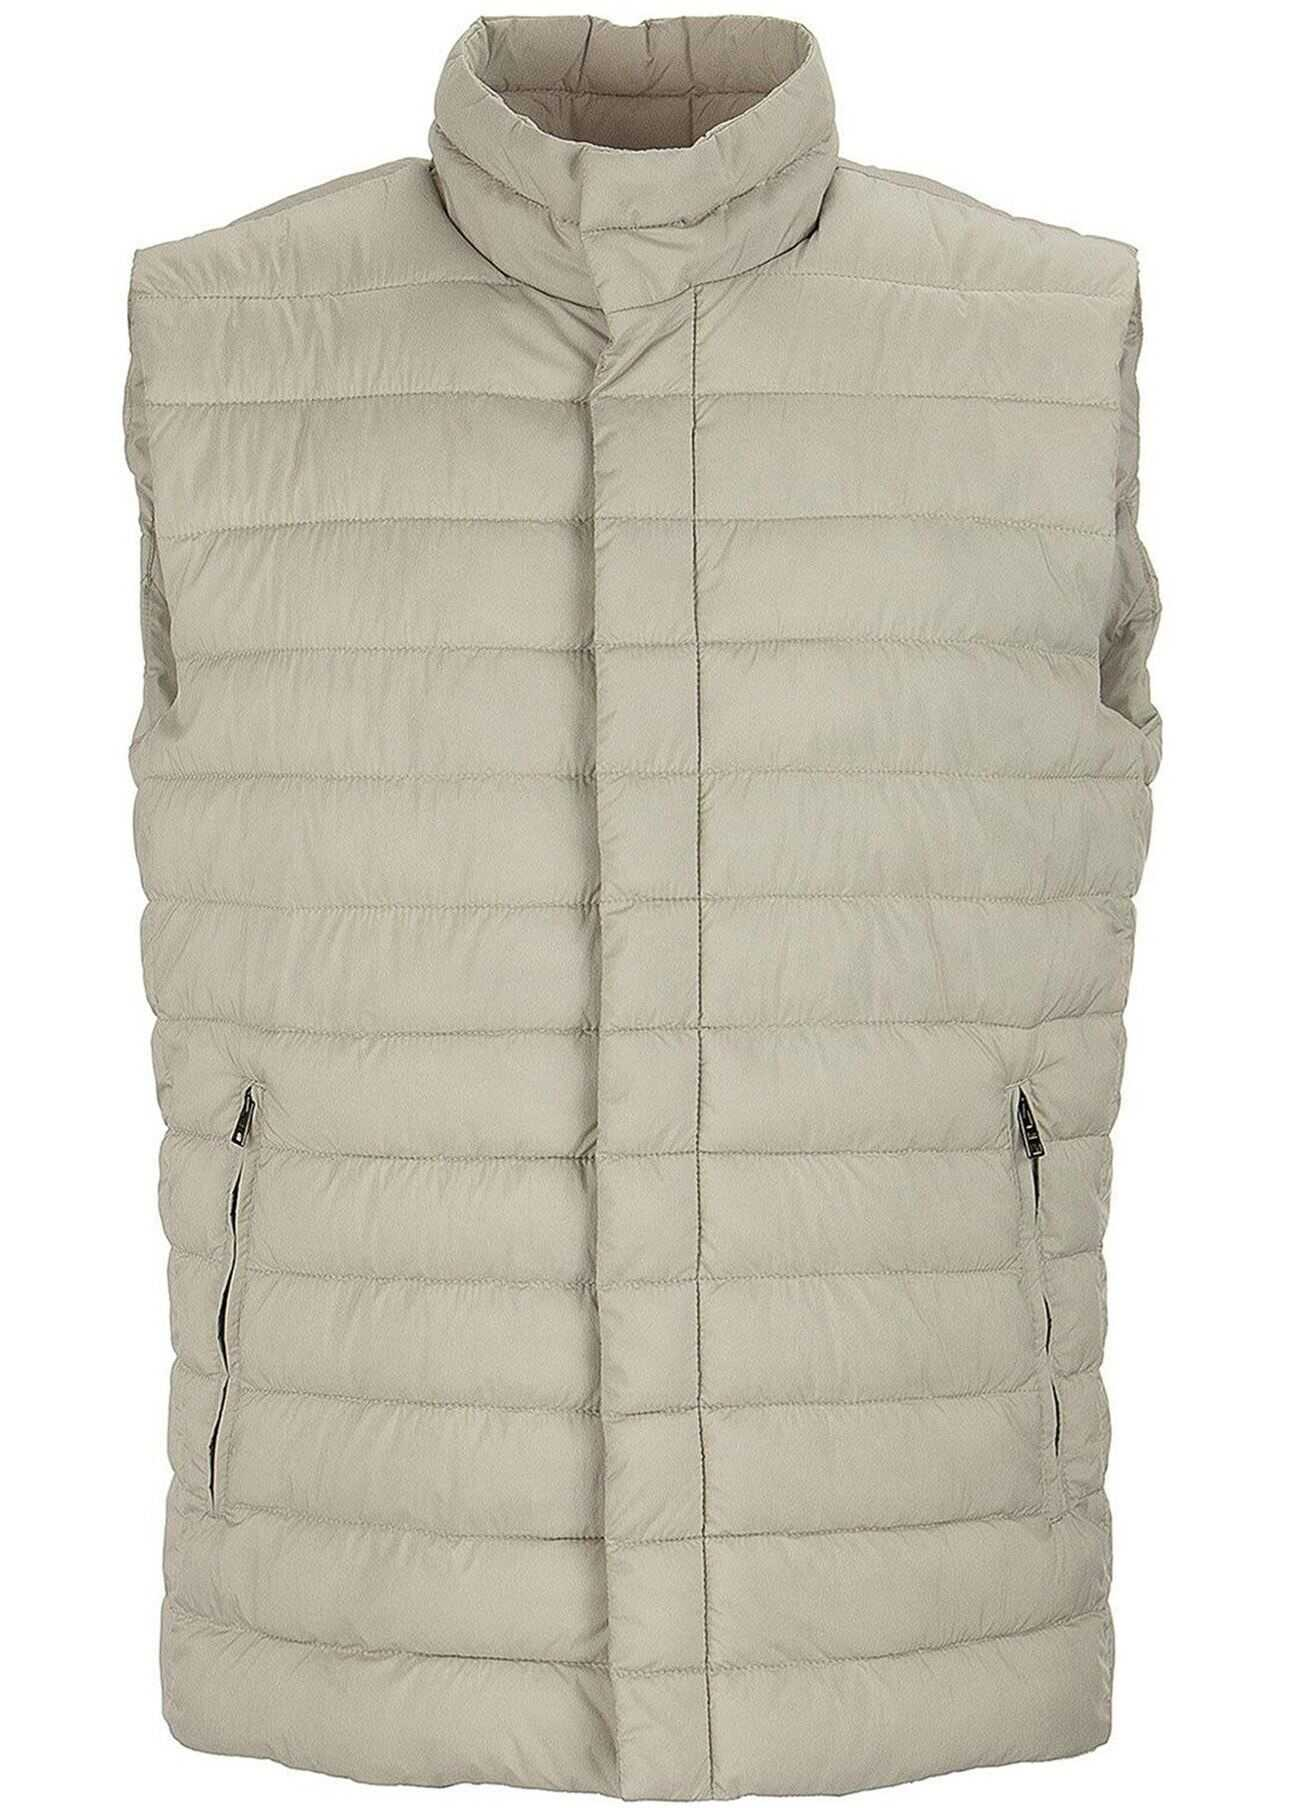 Herno Lo Smanicato Padded Vest In Beige Beige imagine